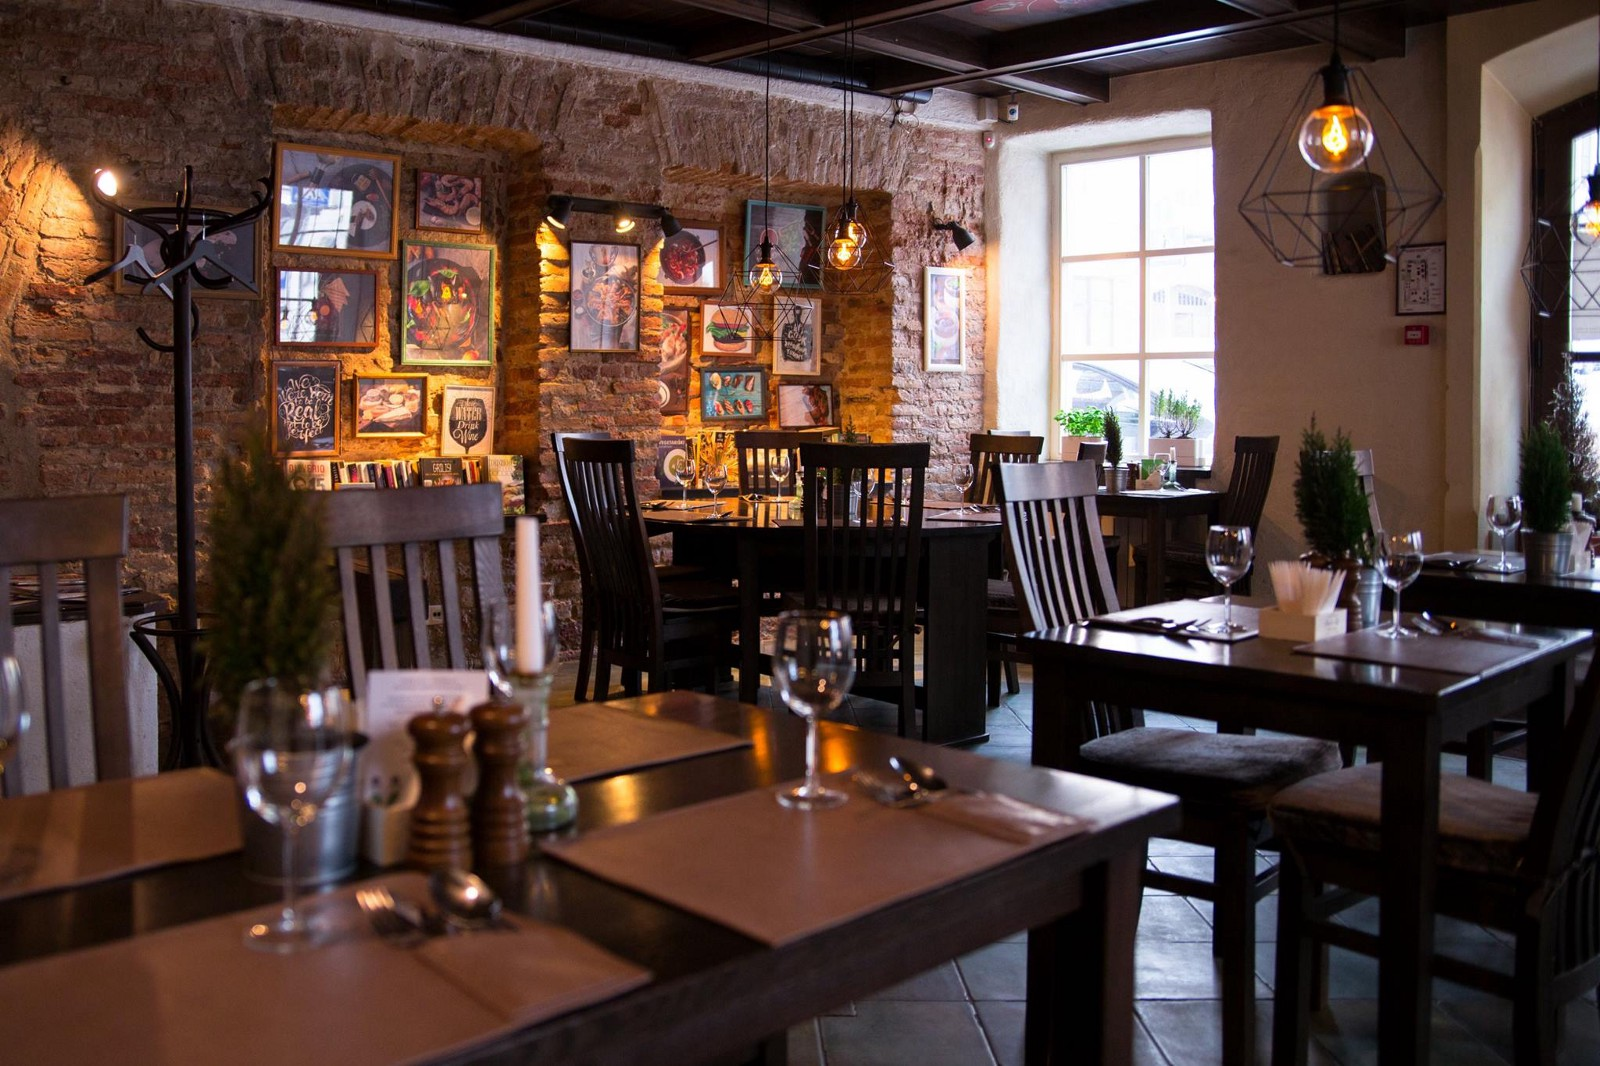 One For All Is A Nice Restaurant Where You Will Enjoy Dishes From Diffe Countries Over The World Including Lithuanian Ones